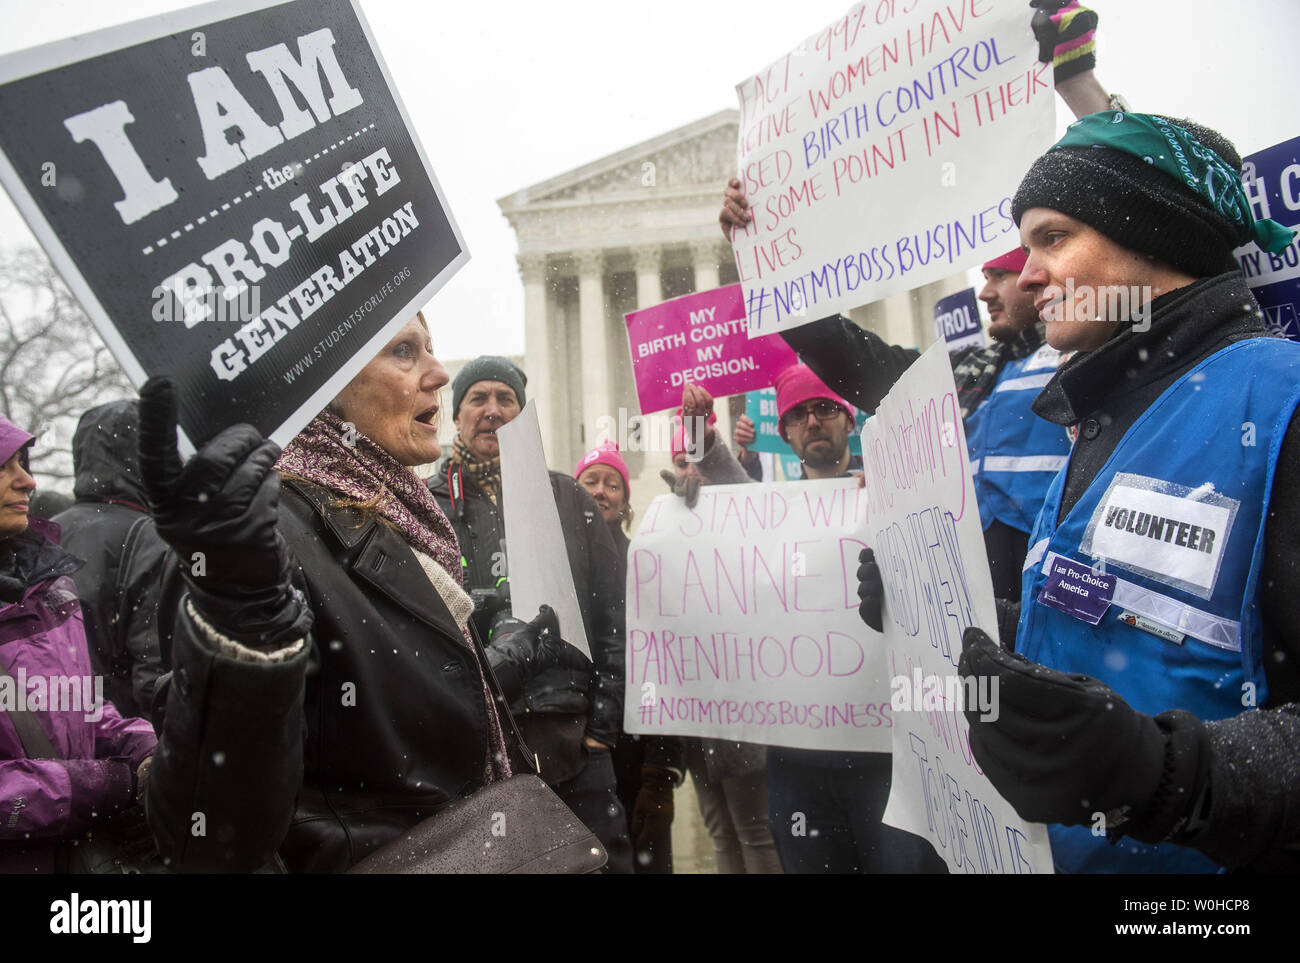 An anti-abortion supporter argues with supporters of women's rights groups as they participate in a rally in front of the Supreme Court as the Court considers two cases brought by Hobby Lobby and Conestoga Wood involving religious objections to the birth control mandate in the Affordable Care Act, in Washington, D.C. on March 25, 2014.  UPI/Kevin Dietsch Stock Photo